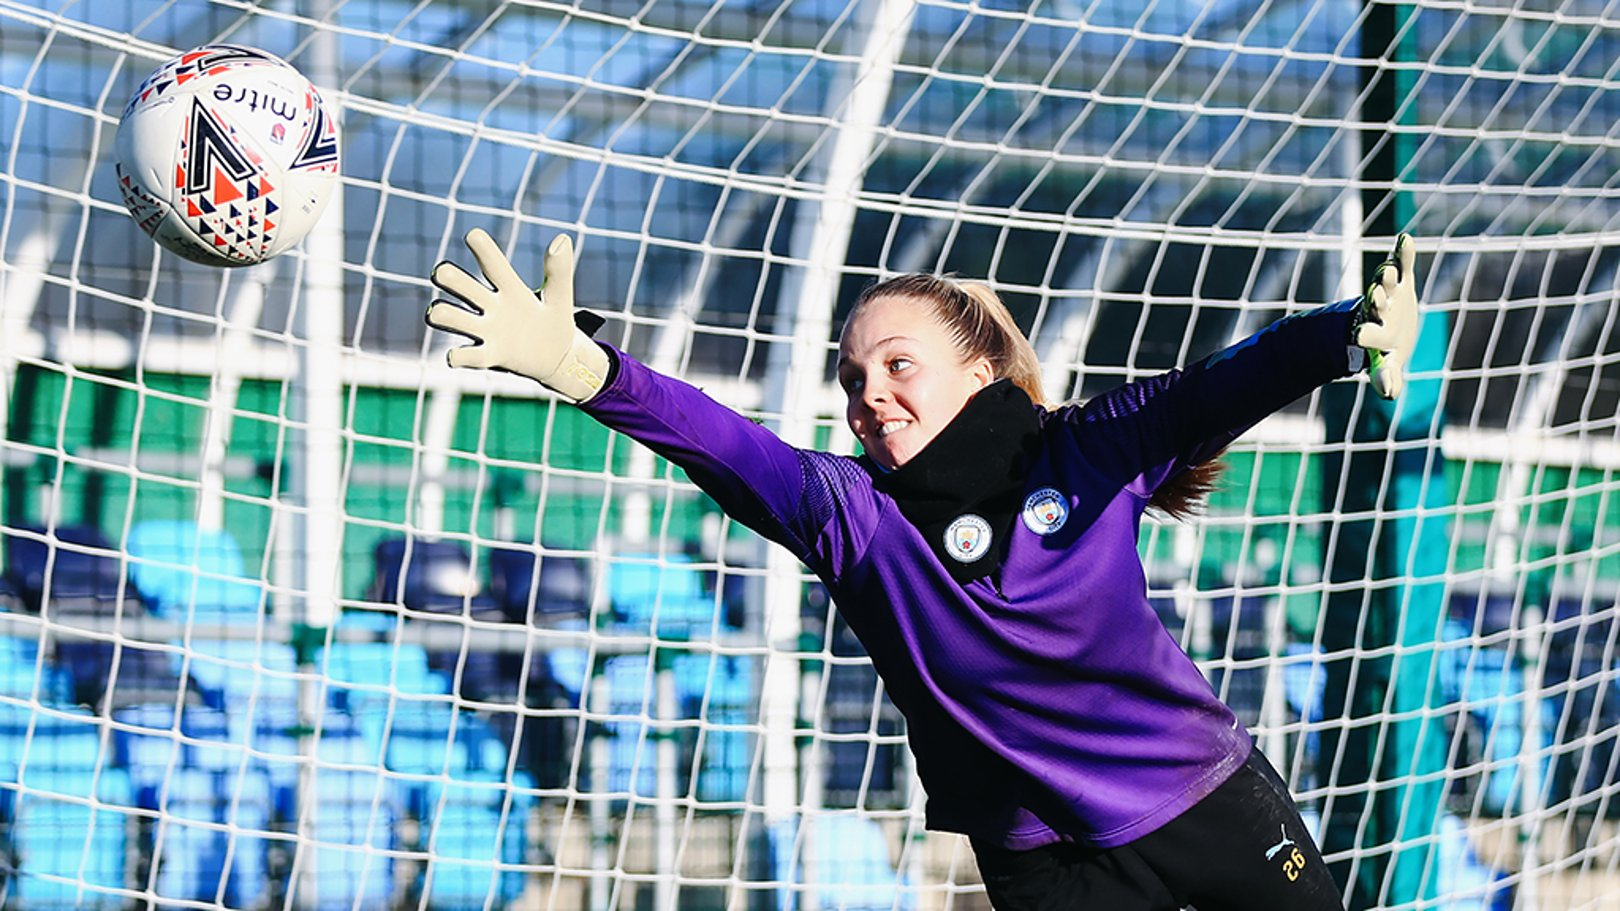 AT ELL STRETCH: Ellie Roebuck with an outrageous save!